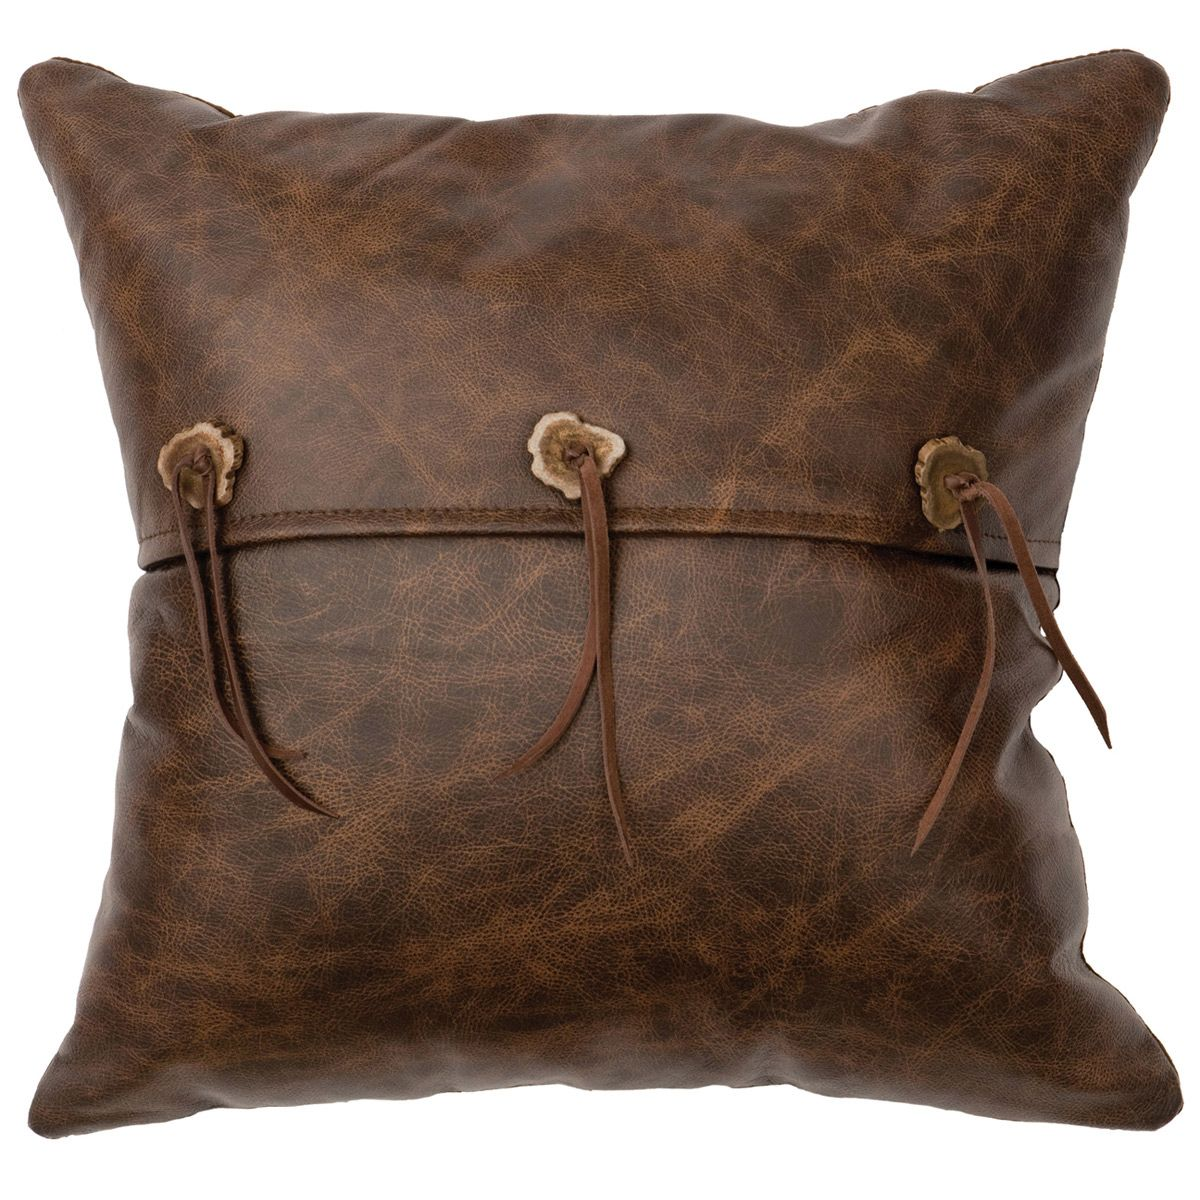 Leather Pillow with Antler Buttons - Leather Back